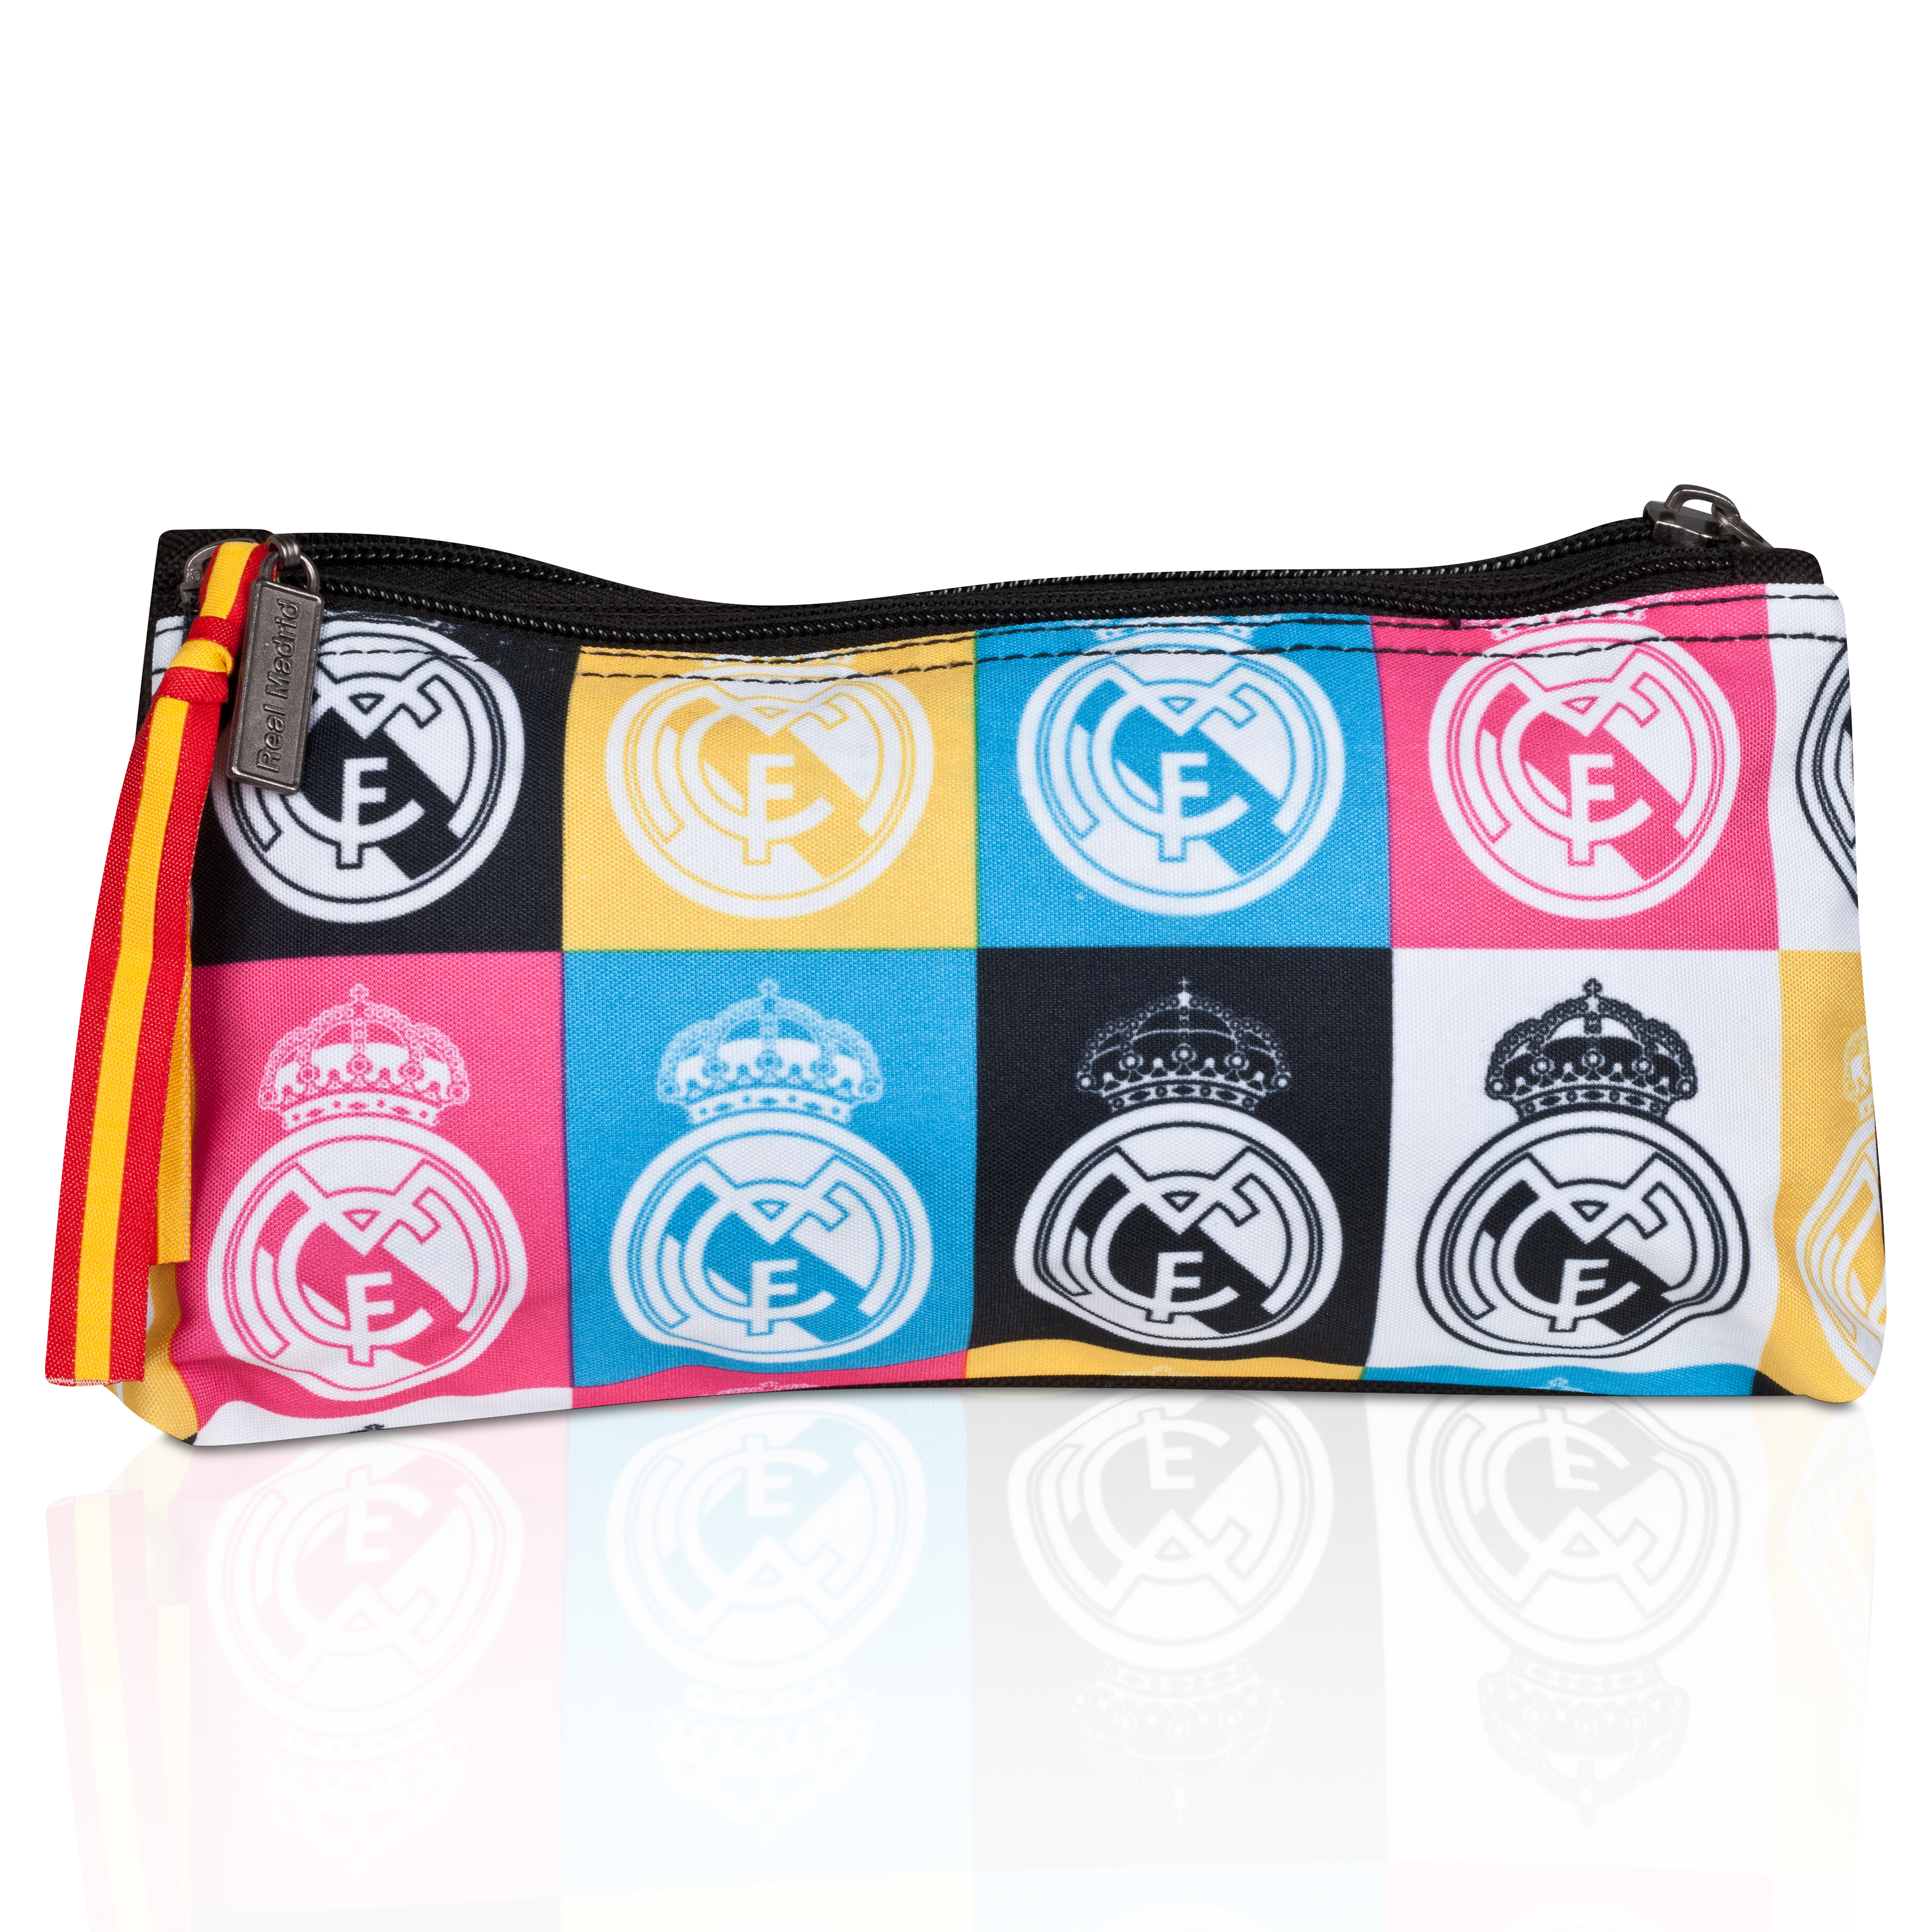 Real Madrid Ladies Carrying Case - 220 x 100 x 80mm